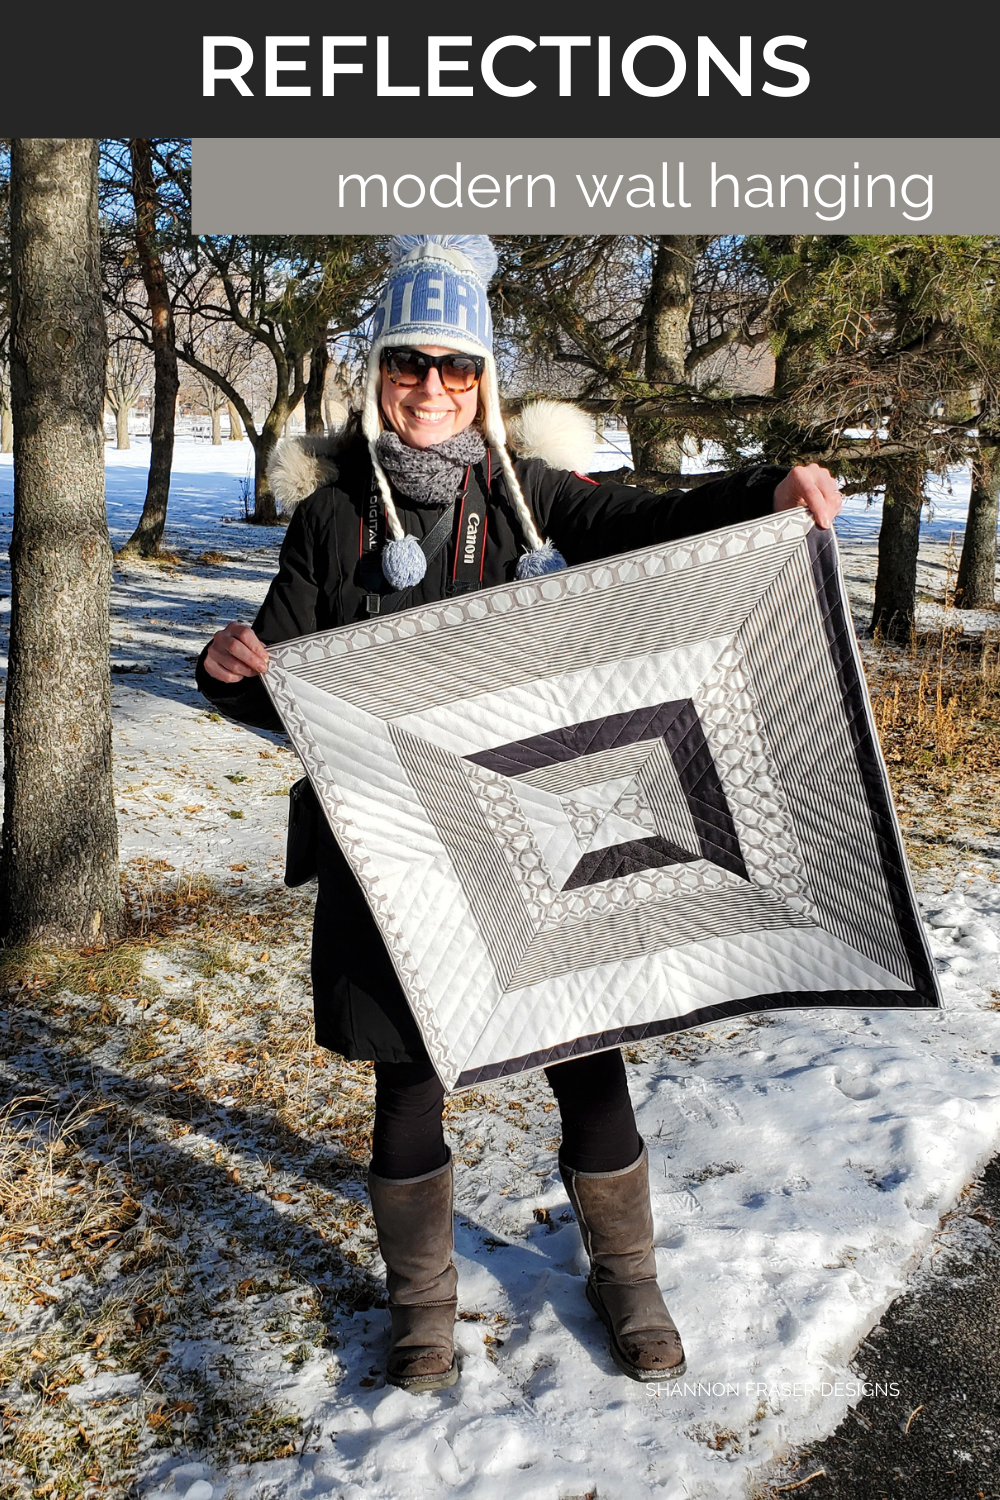 Shannon out in the winter wild holding up her completed Reflections quilted wall hanging  #quiltsinthewild